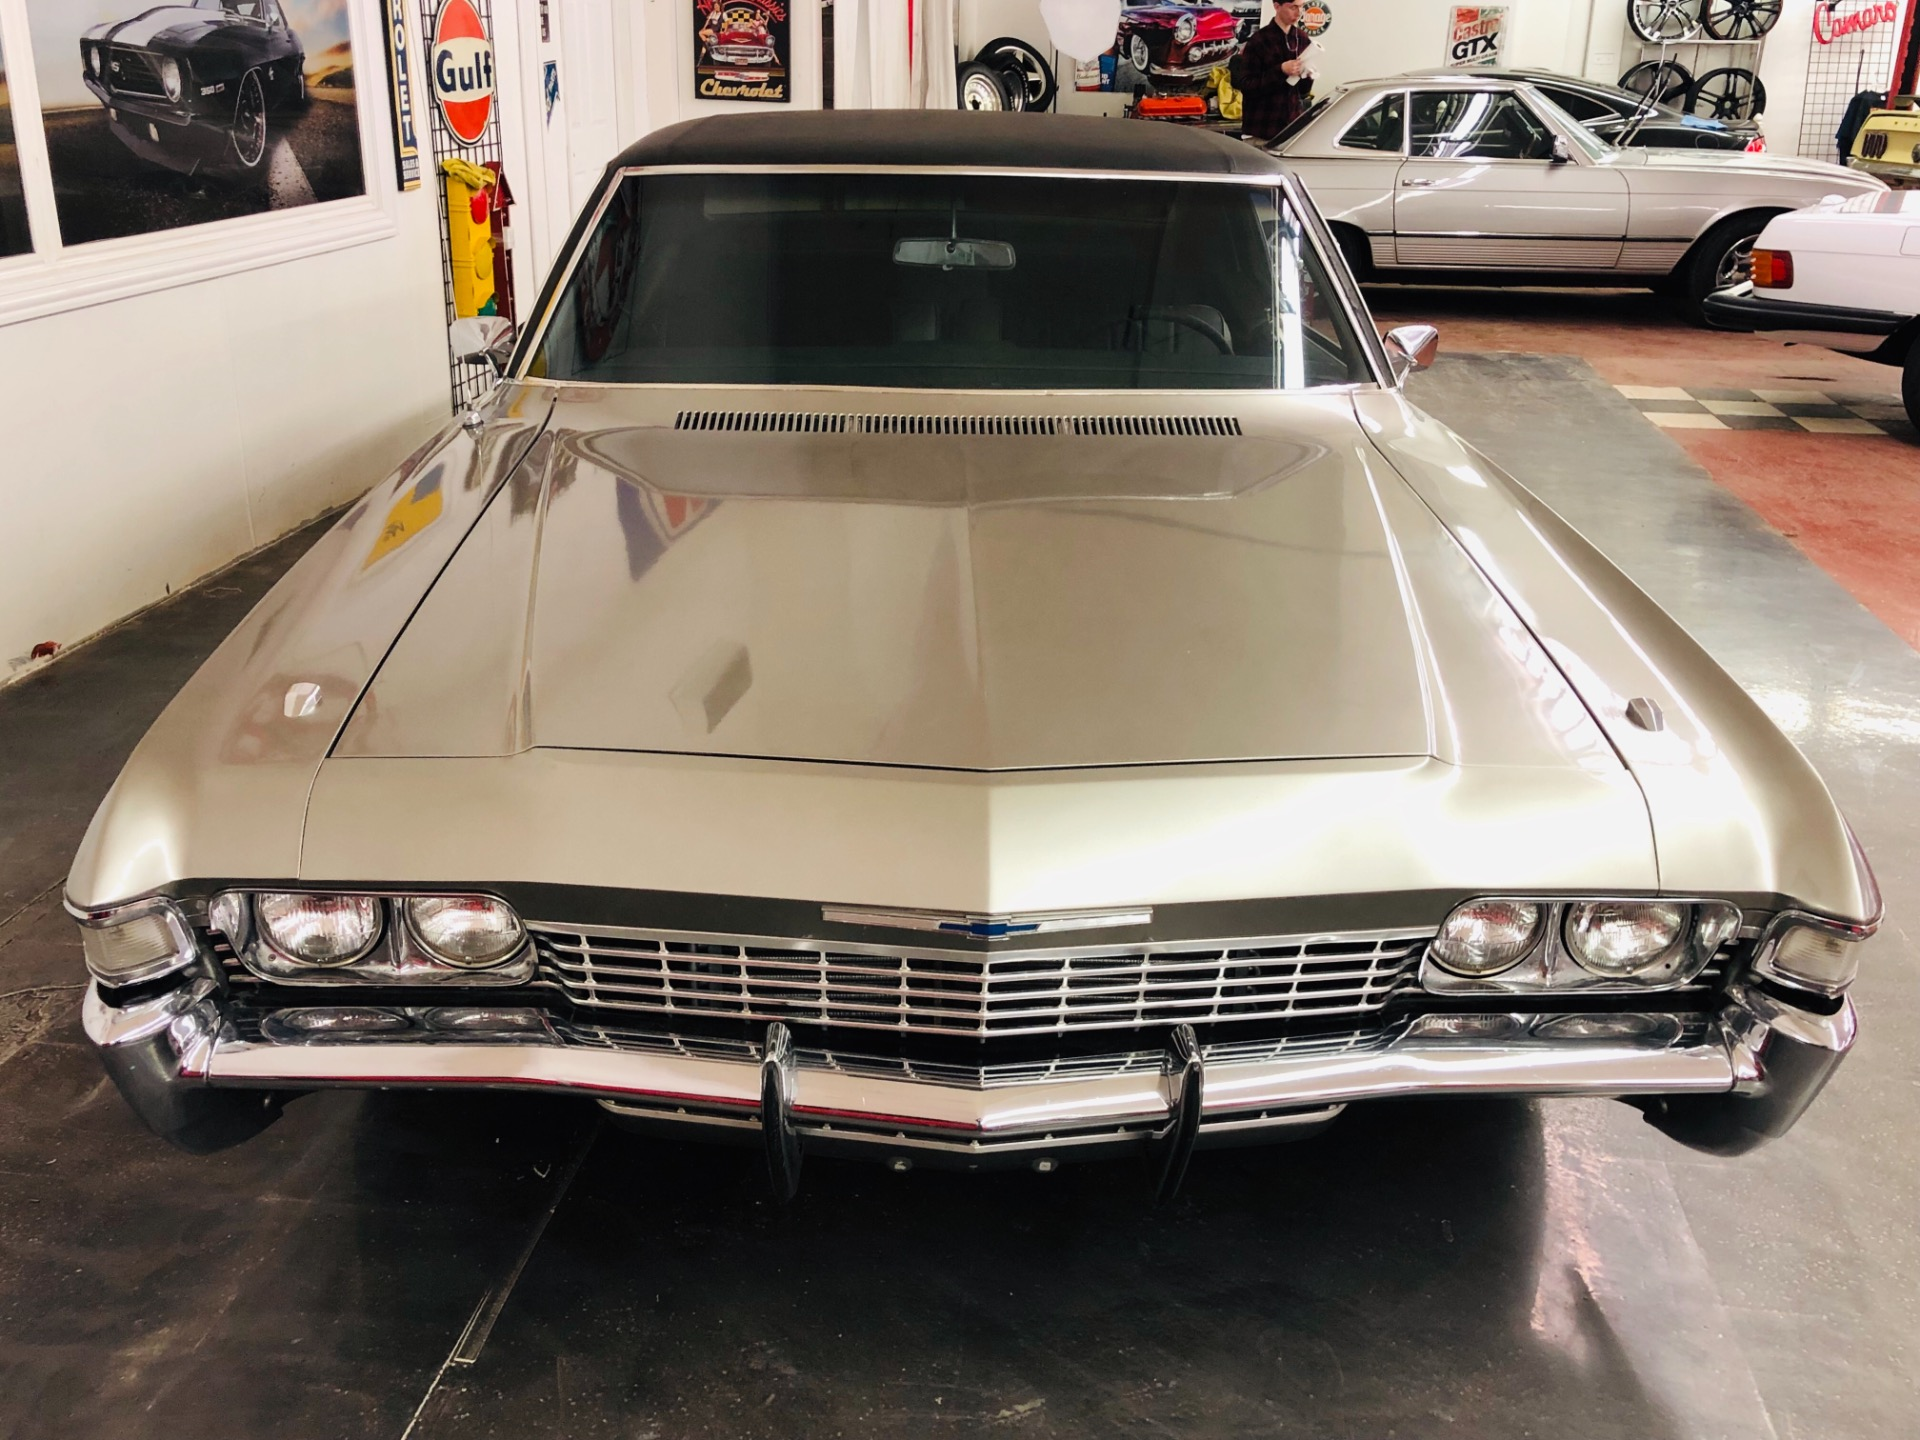 Used 1968 Chevrolet Caprice -NEW LOW PRICE -COOL CUSTOM CAPRICE- AIR RIDE- NEW PAINT- SEE VIDEO | Mundelein, IL